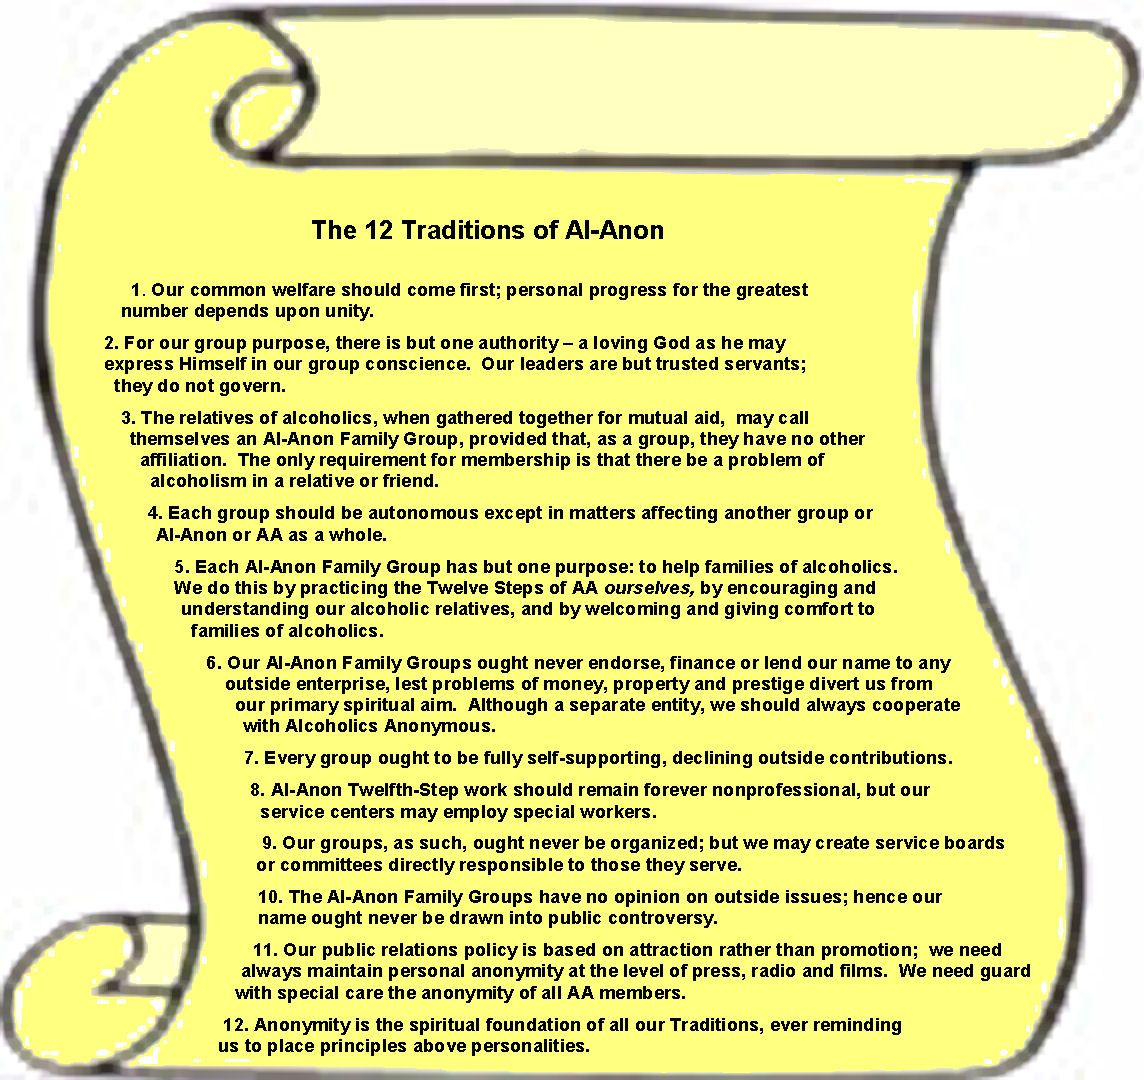 Worksheet Al Anon 12 Steps Worksheets Grass Fedjp Worksheet Study Site